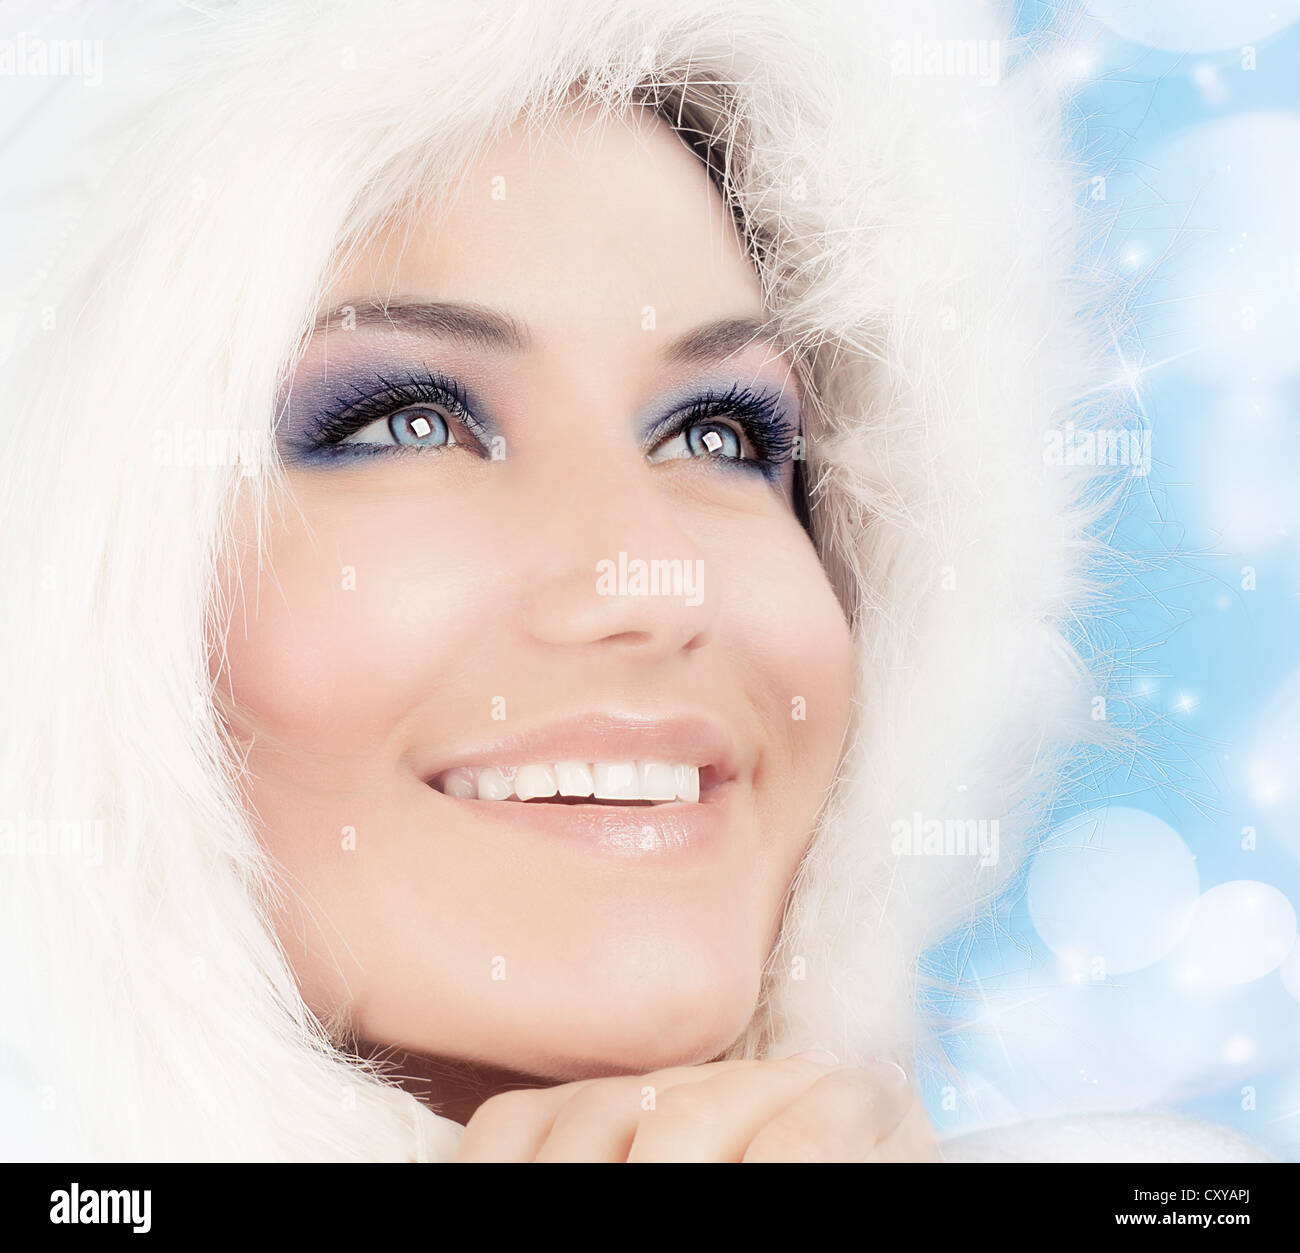 Snow queen, beautiful woman in Christmas style makeup, female portrait over blue holiday background with shiny glowing - Stock Image